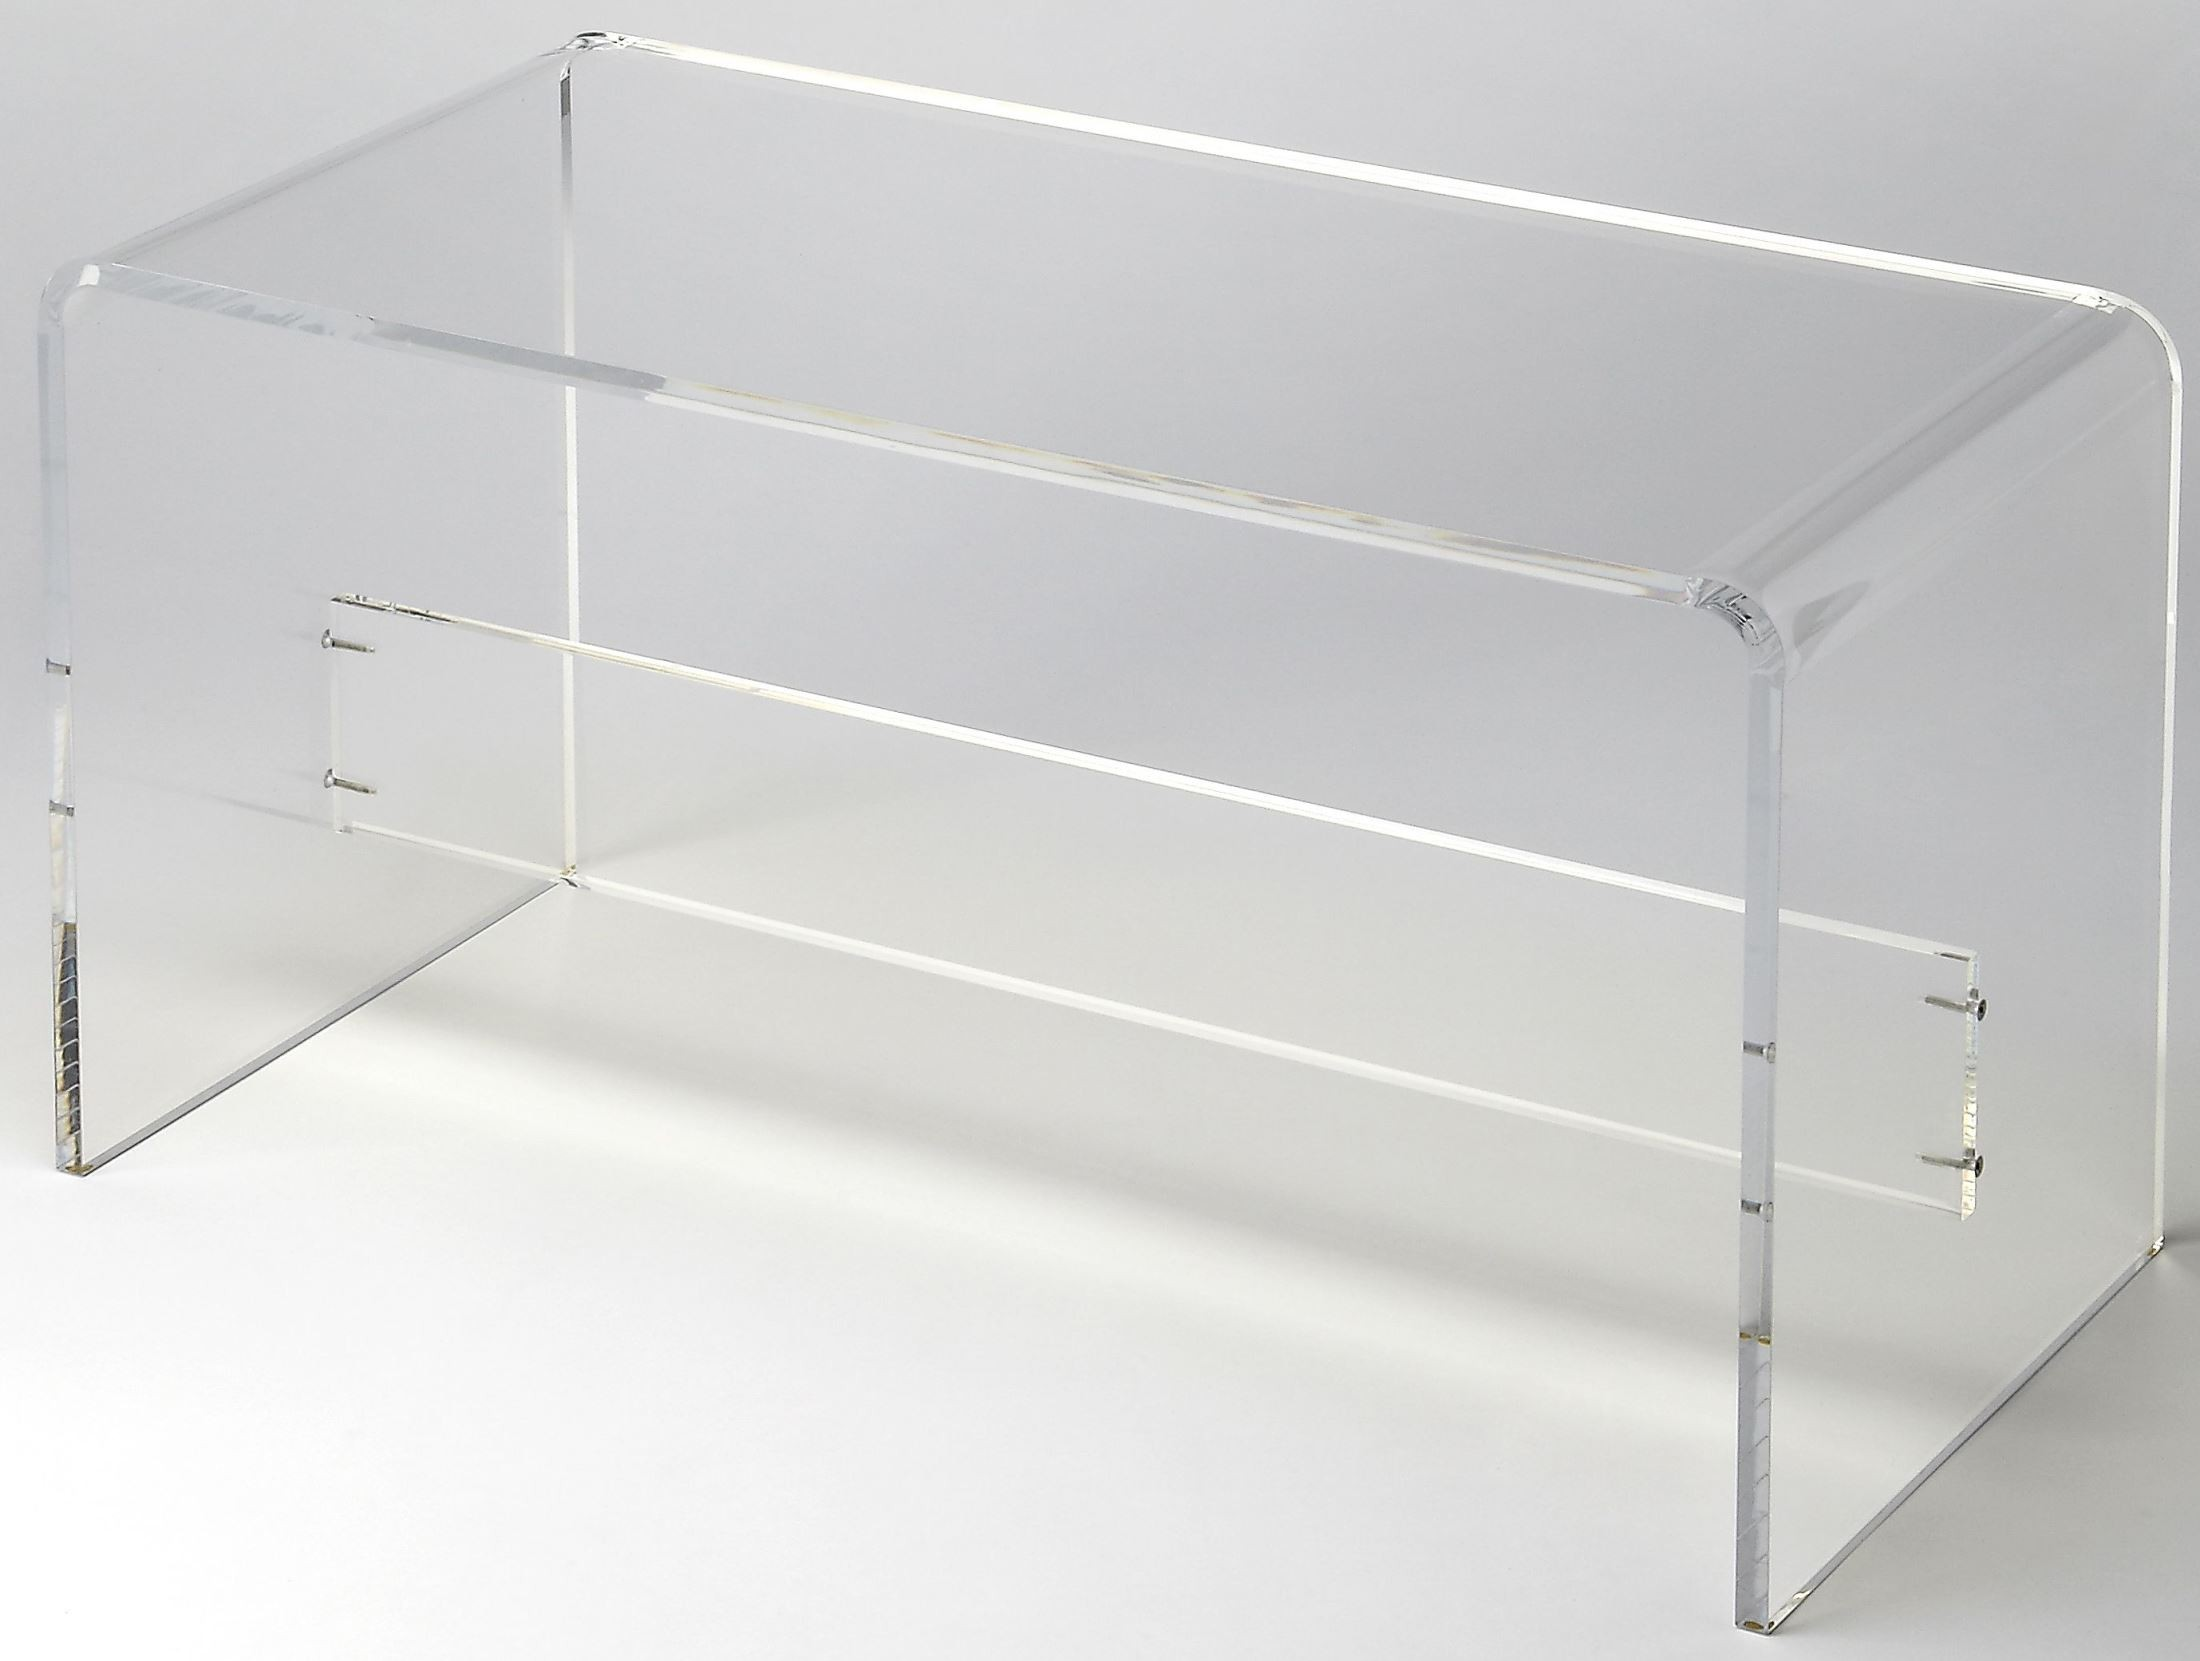 28 clear acrylic bench sale 825 00 acrylic light bench chai